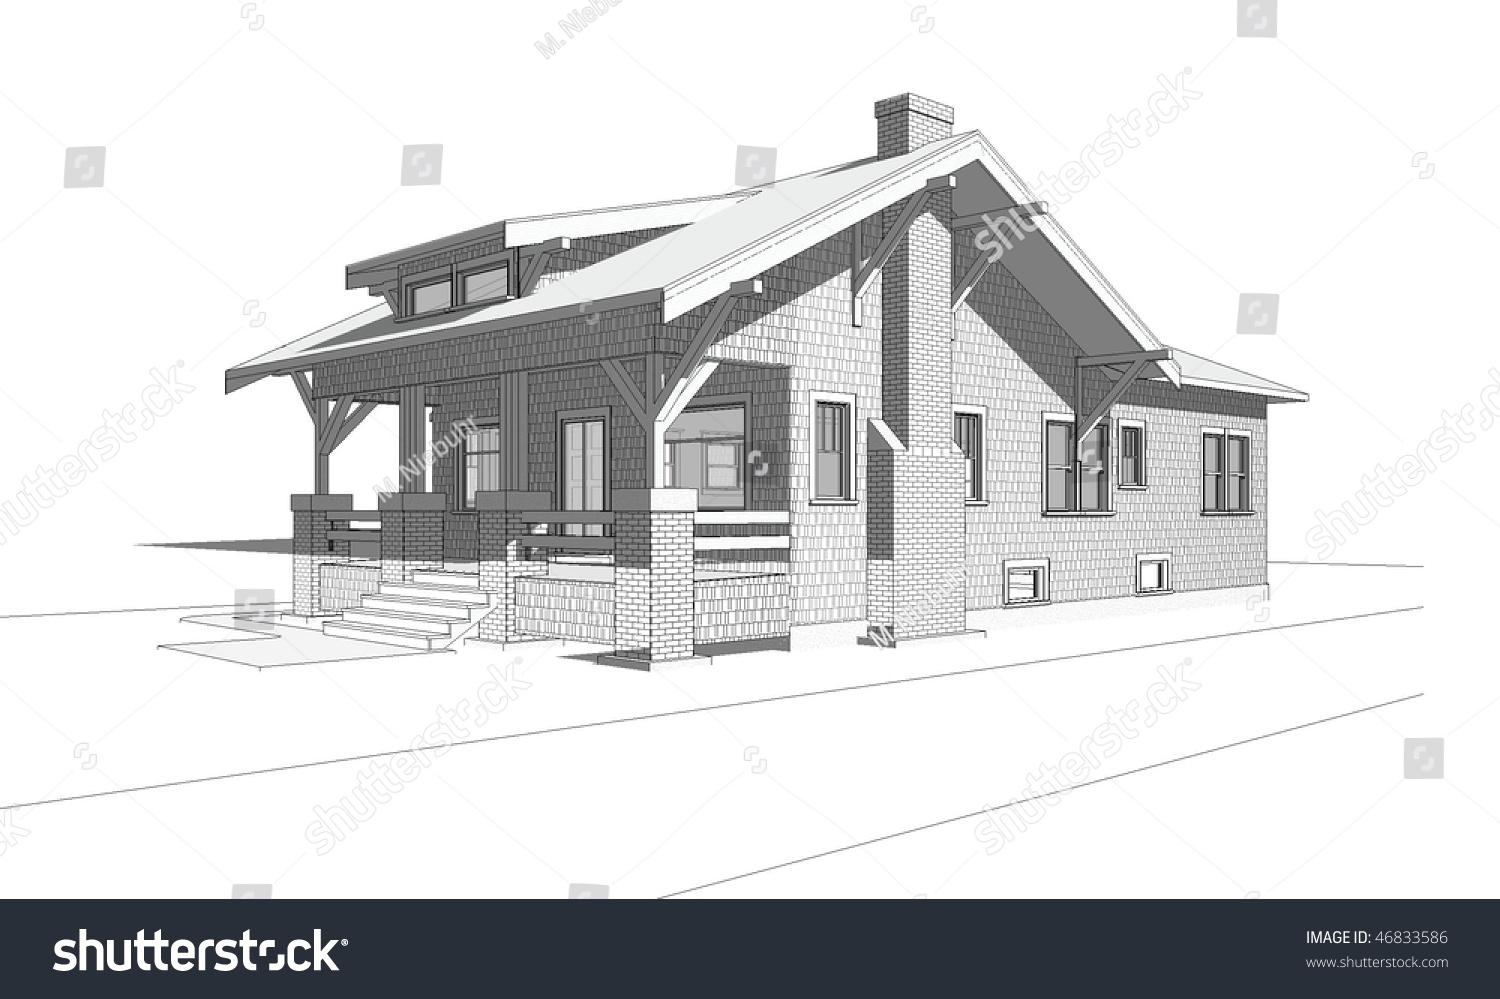 Architectural Perspective Drawing Of Old Craftsman Style Bungalow Home